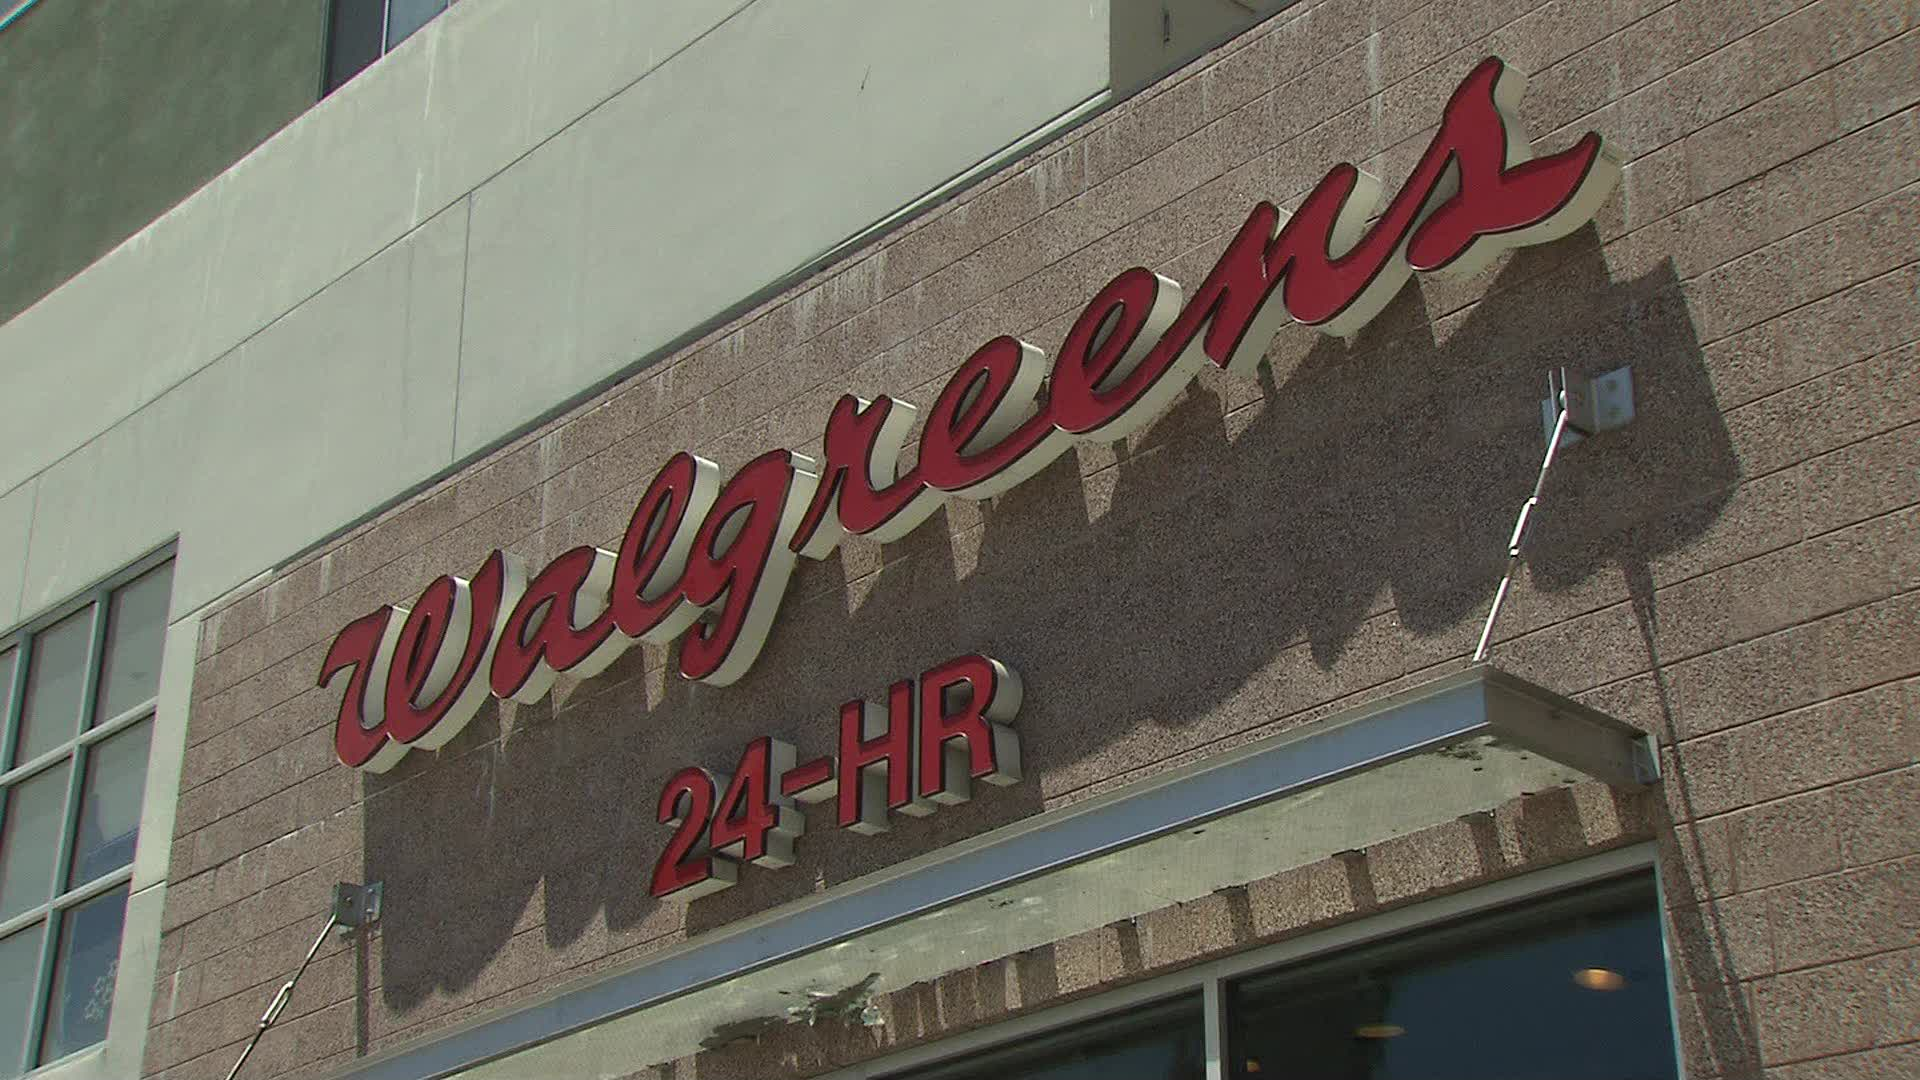 Walgreens asks customers not to openly carry guns in its